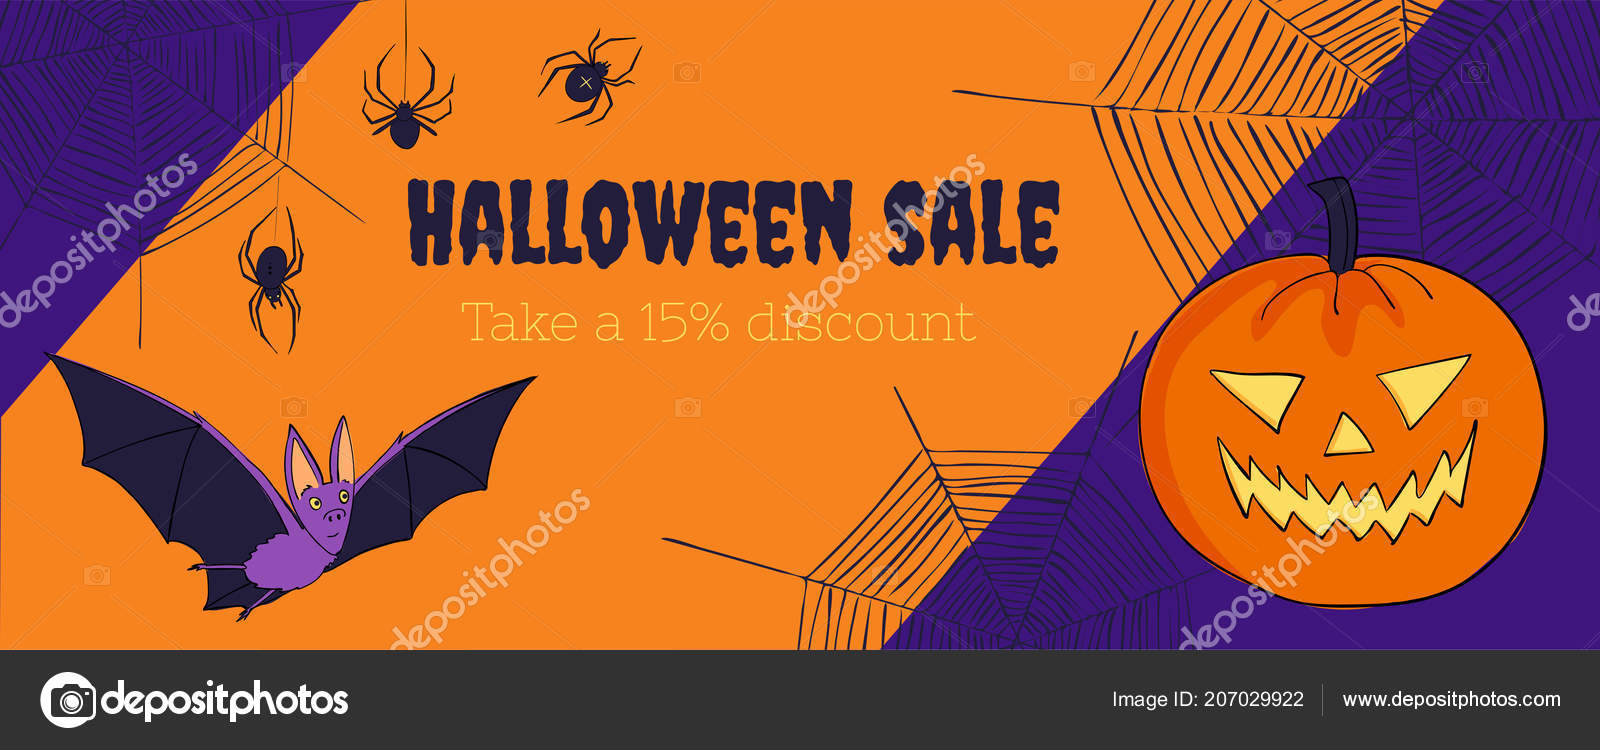 halloween sales web banner template discount voucher image with